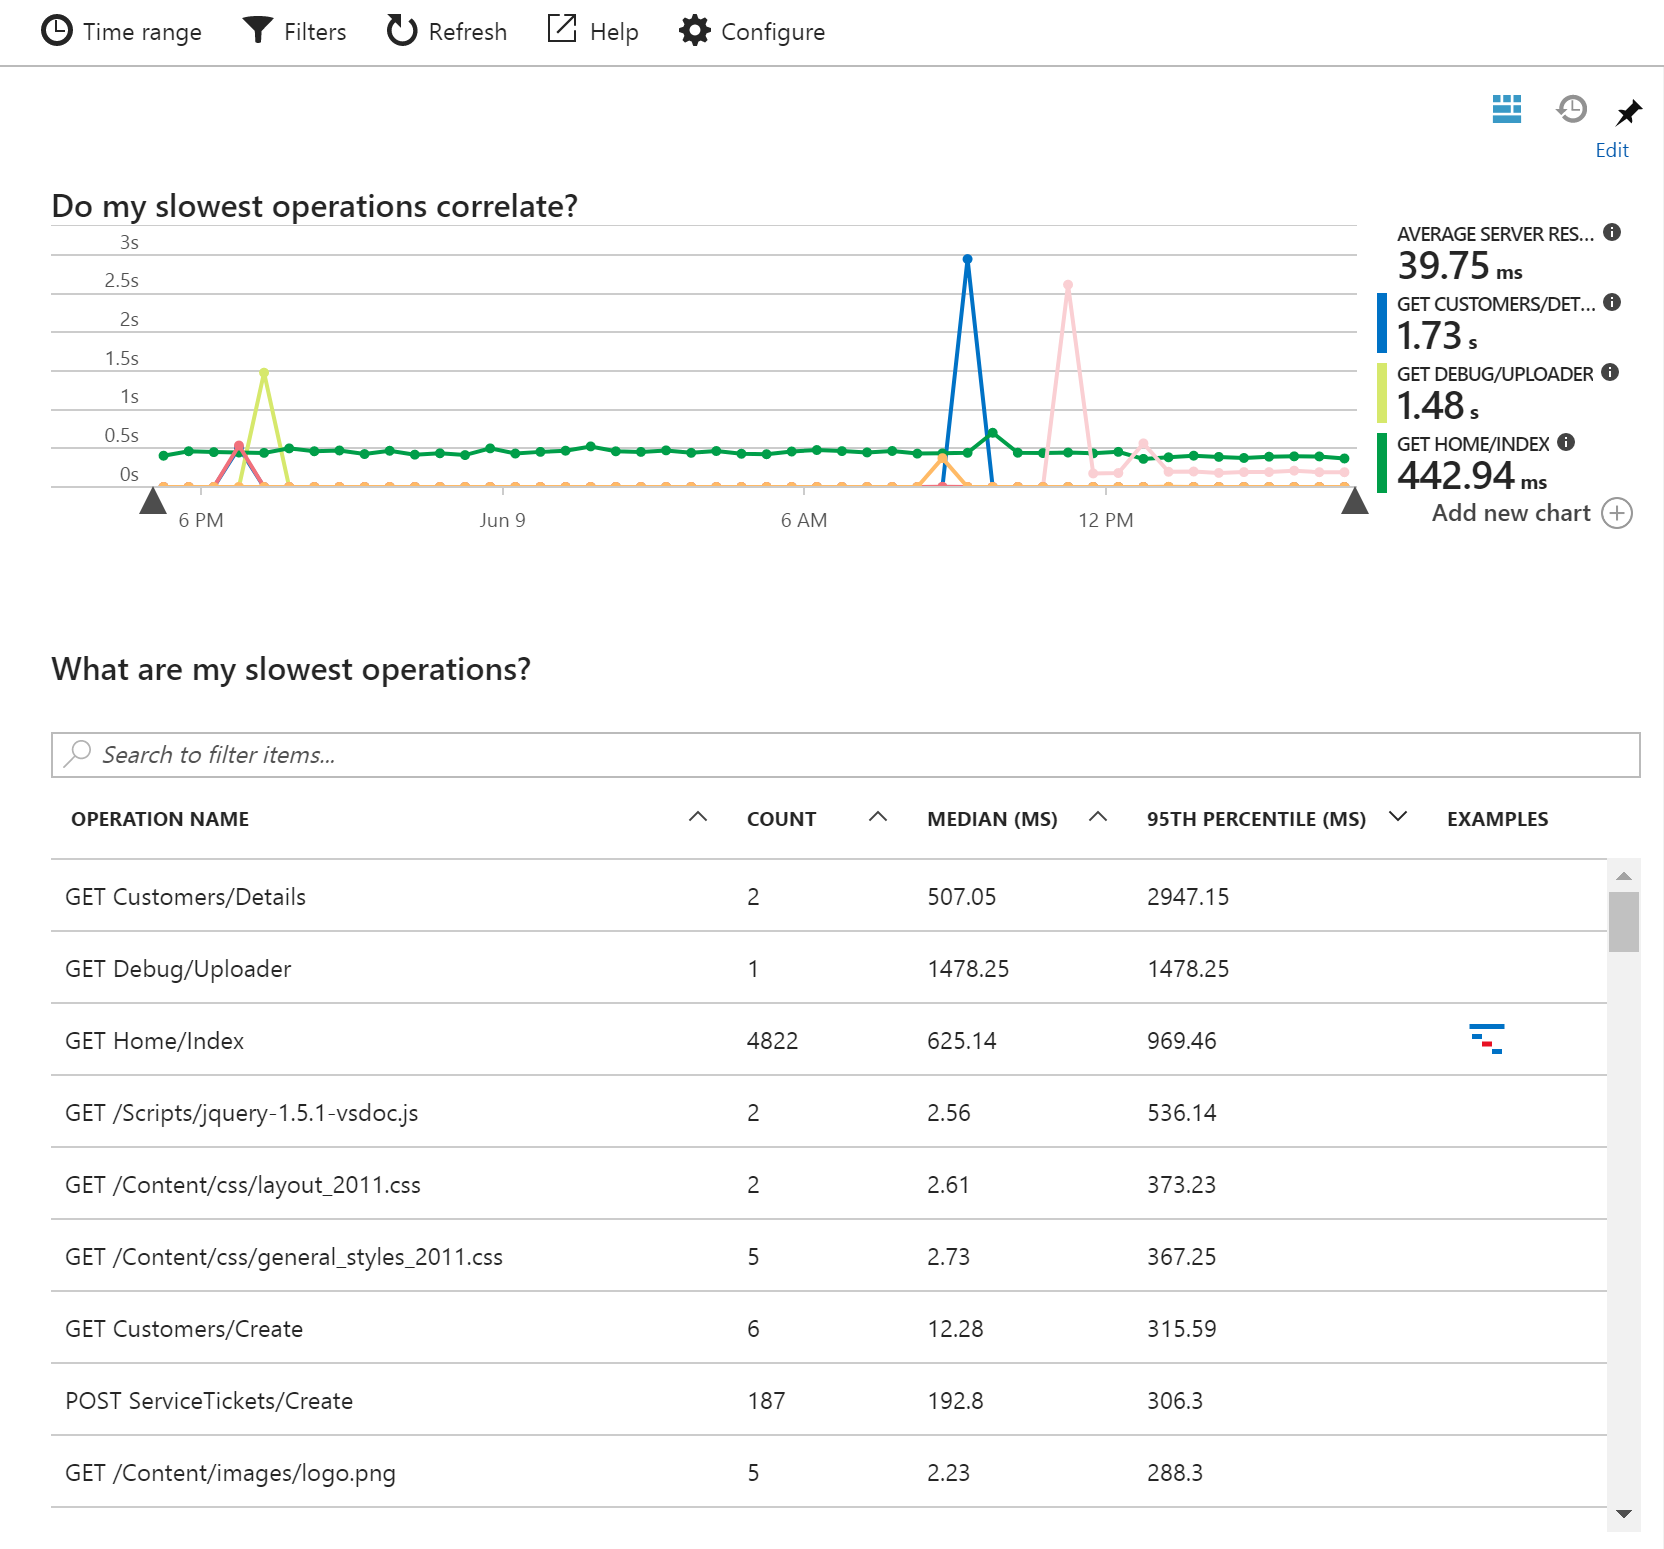 Application insights interactive performance